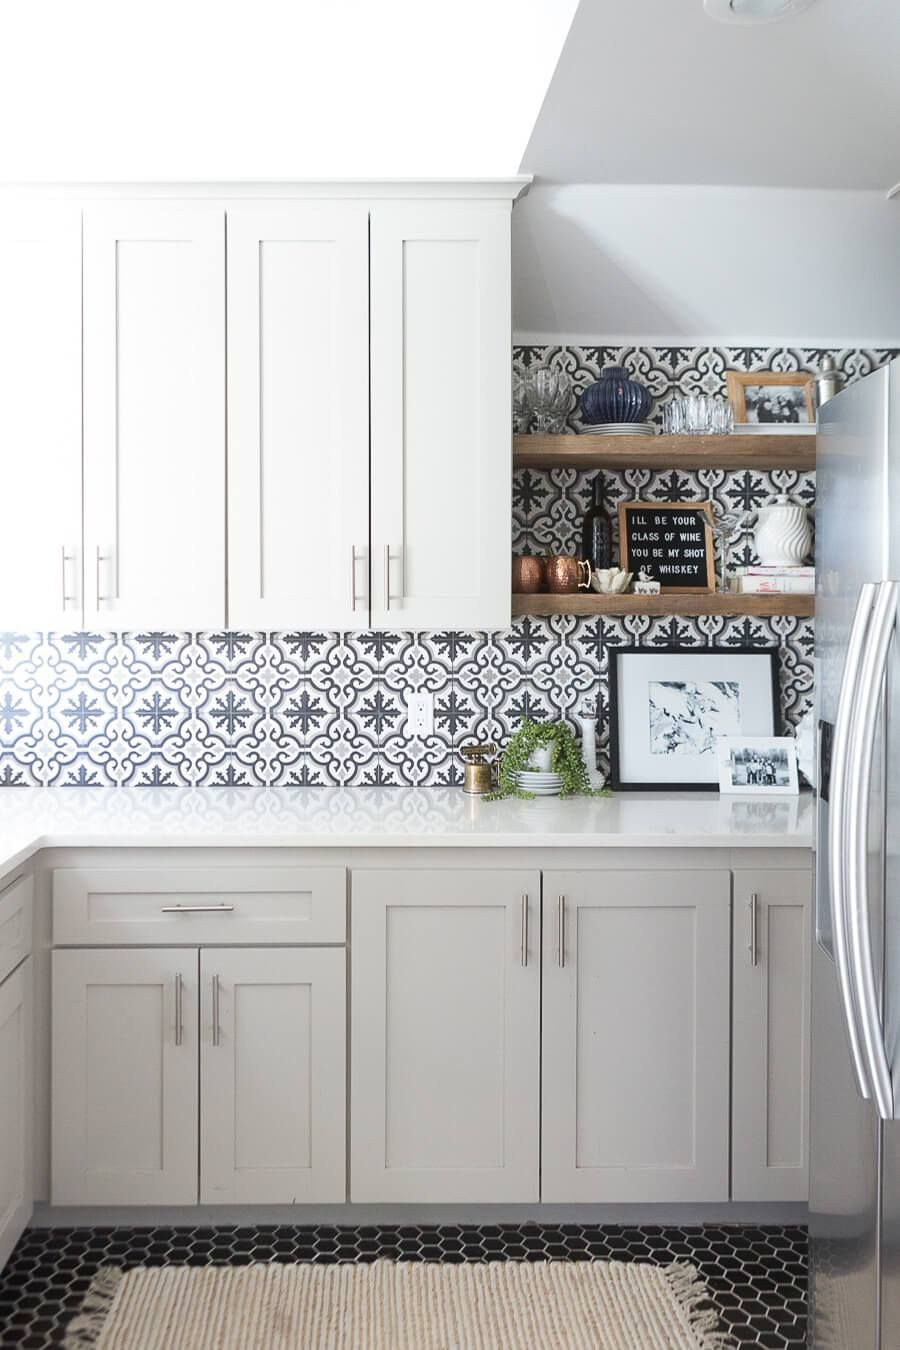 11 Kitchen Tile Backsplash Ideas for White Cabinets - That ...